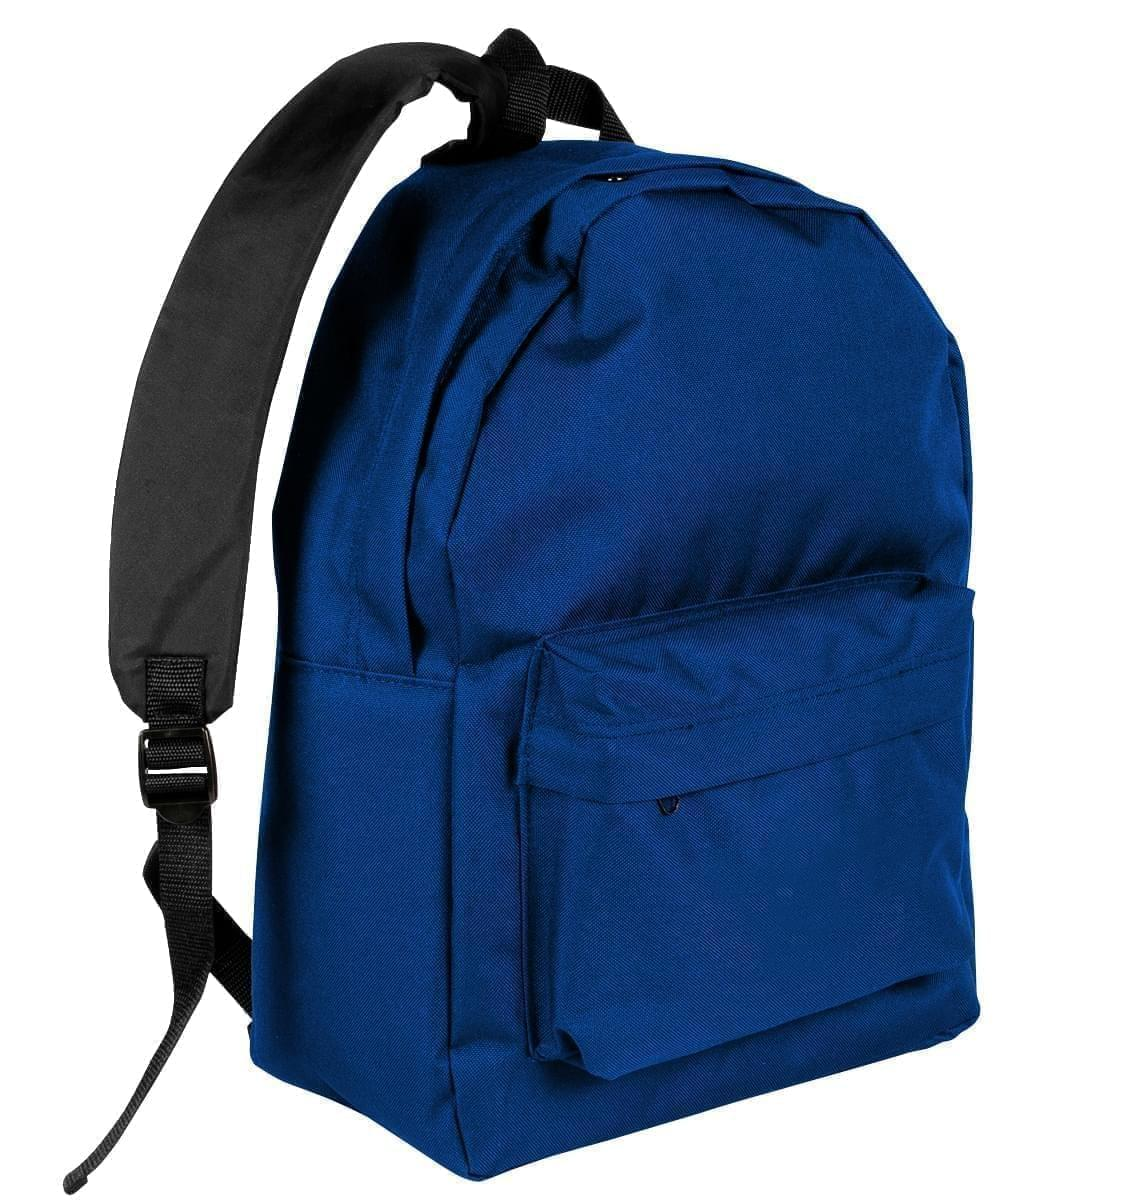 USA Made Nylon Poly Backpack Knapsacks, Royal Blue-Black, 8960-A0R